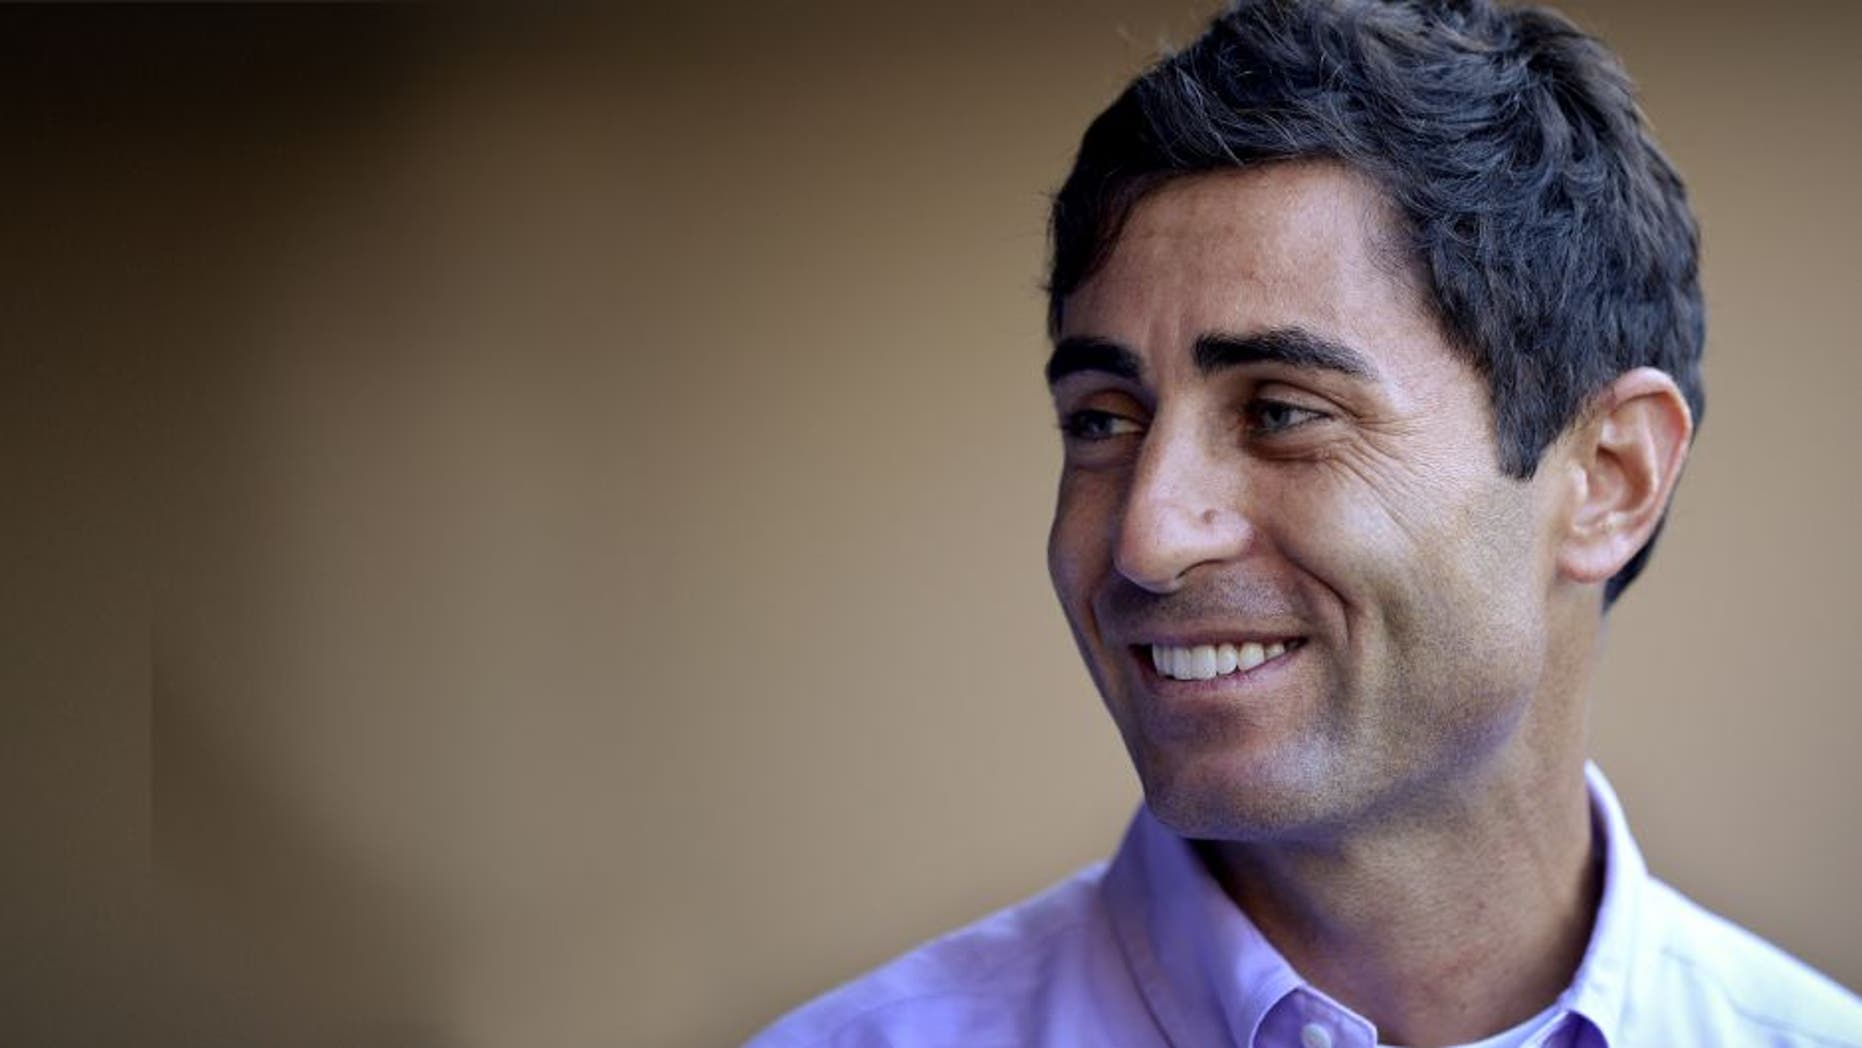 SAN DIEGO, CA - AUGUST 26: AJ Preller of the San Diego Padres visits the dugout prior to the game against the Milwaukee Brewers at Petco Park on August 26, 2014 in San Diego, California. (Photo by Andy Hayt/San Diego Padres/Getty Images)